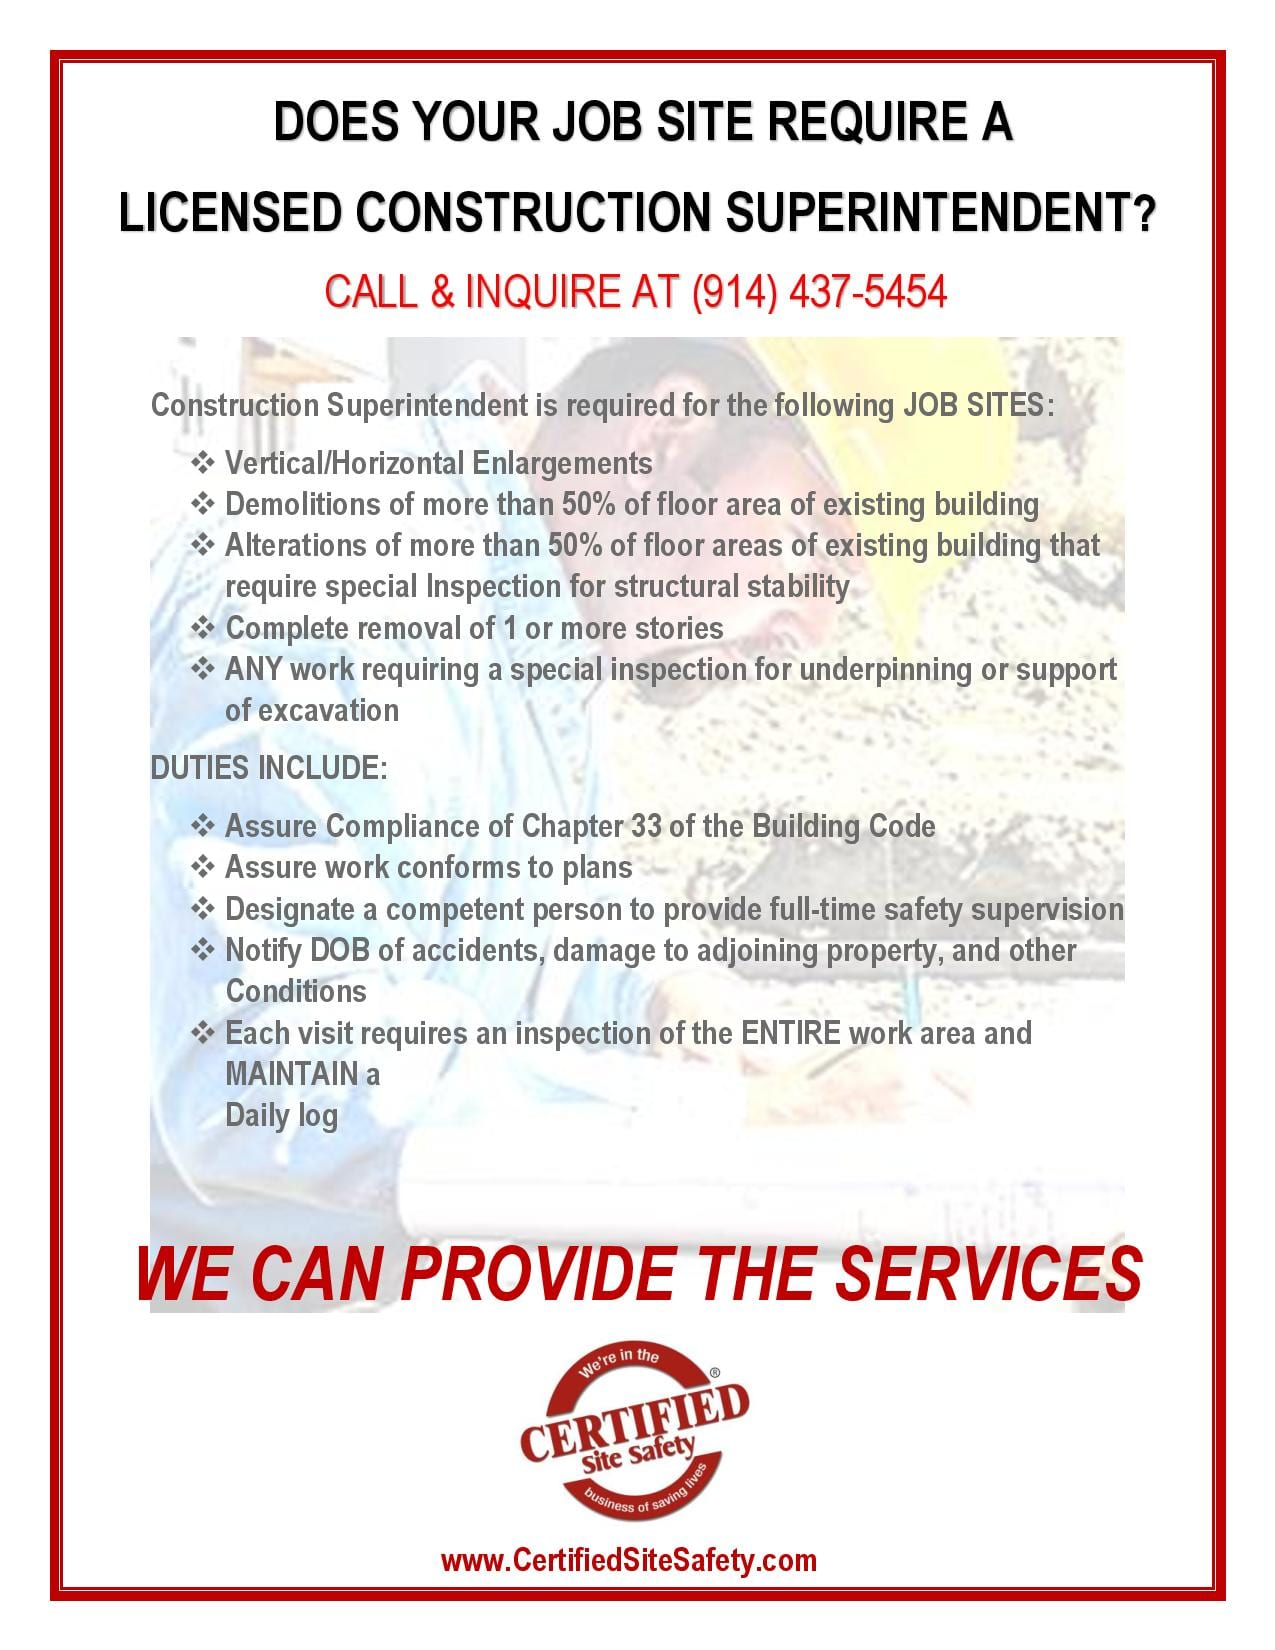 If Youu0027re Looking To Hire A Licensed Construction Superintendent For Your  Current Job Site, Contact Us Here At Certified Site Safety For More  Information.